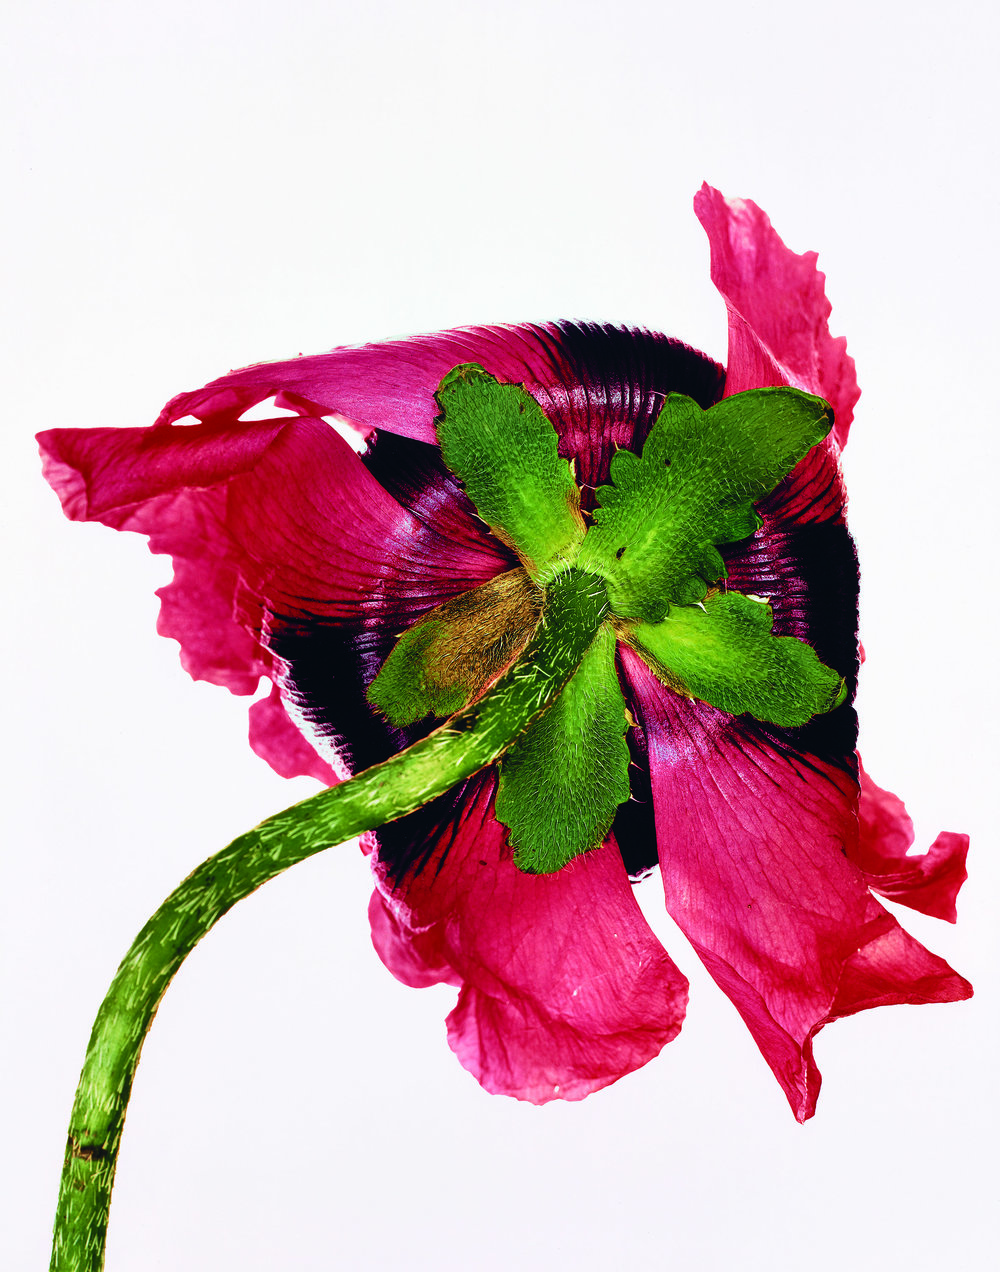 Irving Penn (American, 1917–2009)     Single Oriental Poppy , New York, 1968    Dye transfer print, 1987   16 ⅞ × 21 ⅛ in. (42.9 × 53.7 cm)   The Metropolitan Museum of Art, New York   Promised Gift of The Irving Penn Foundation   © The Irving Penn Foundation